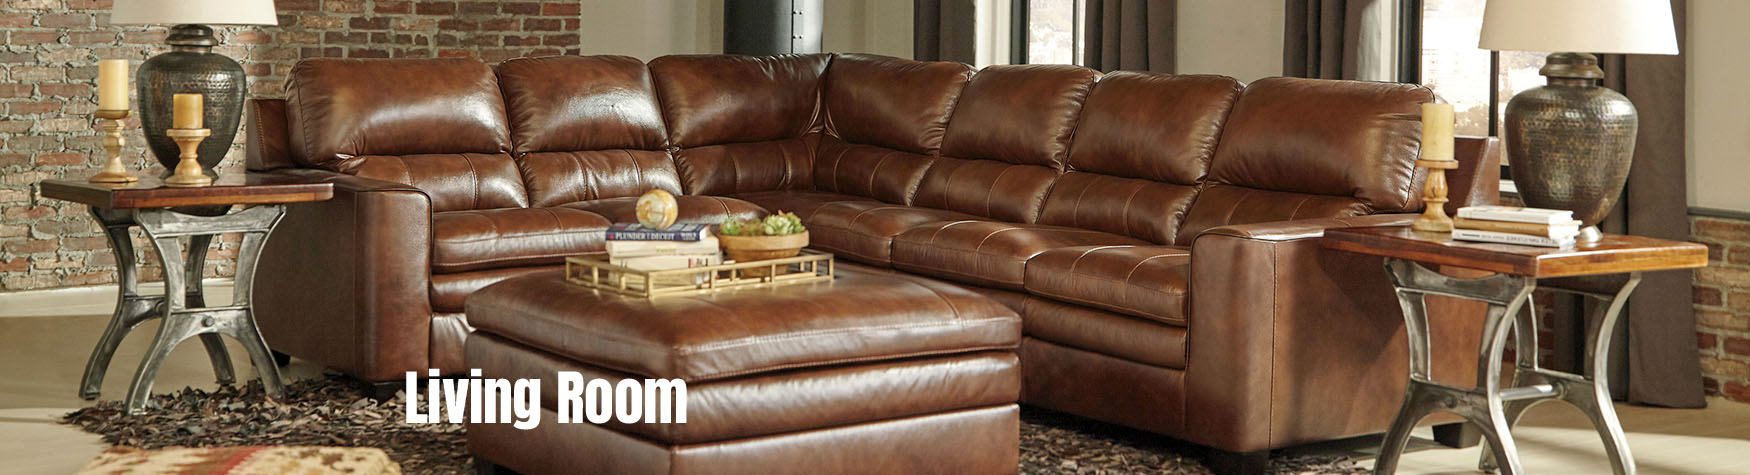 Living Room Furniture Direct Now